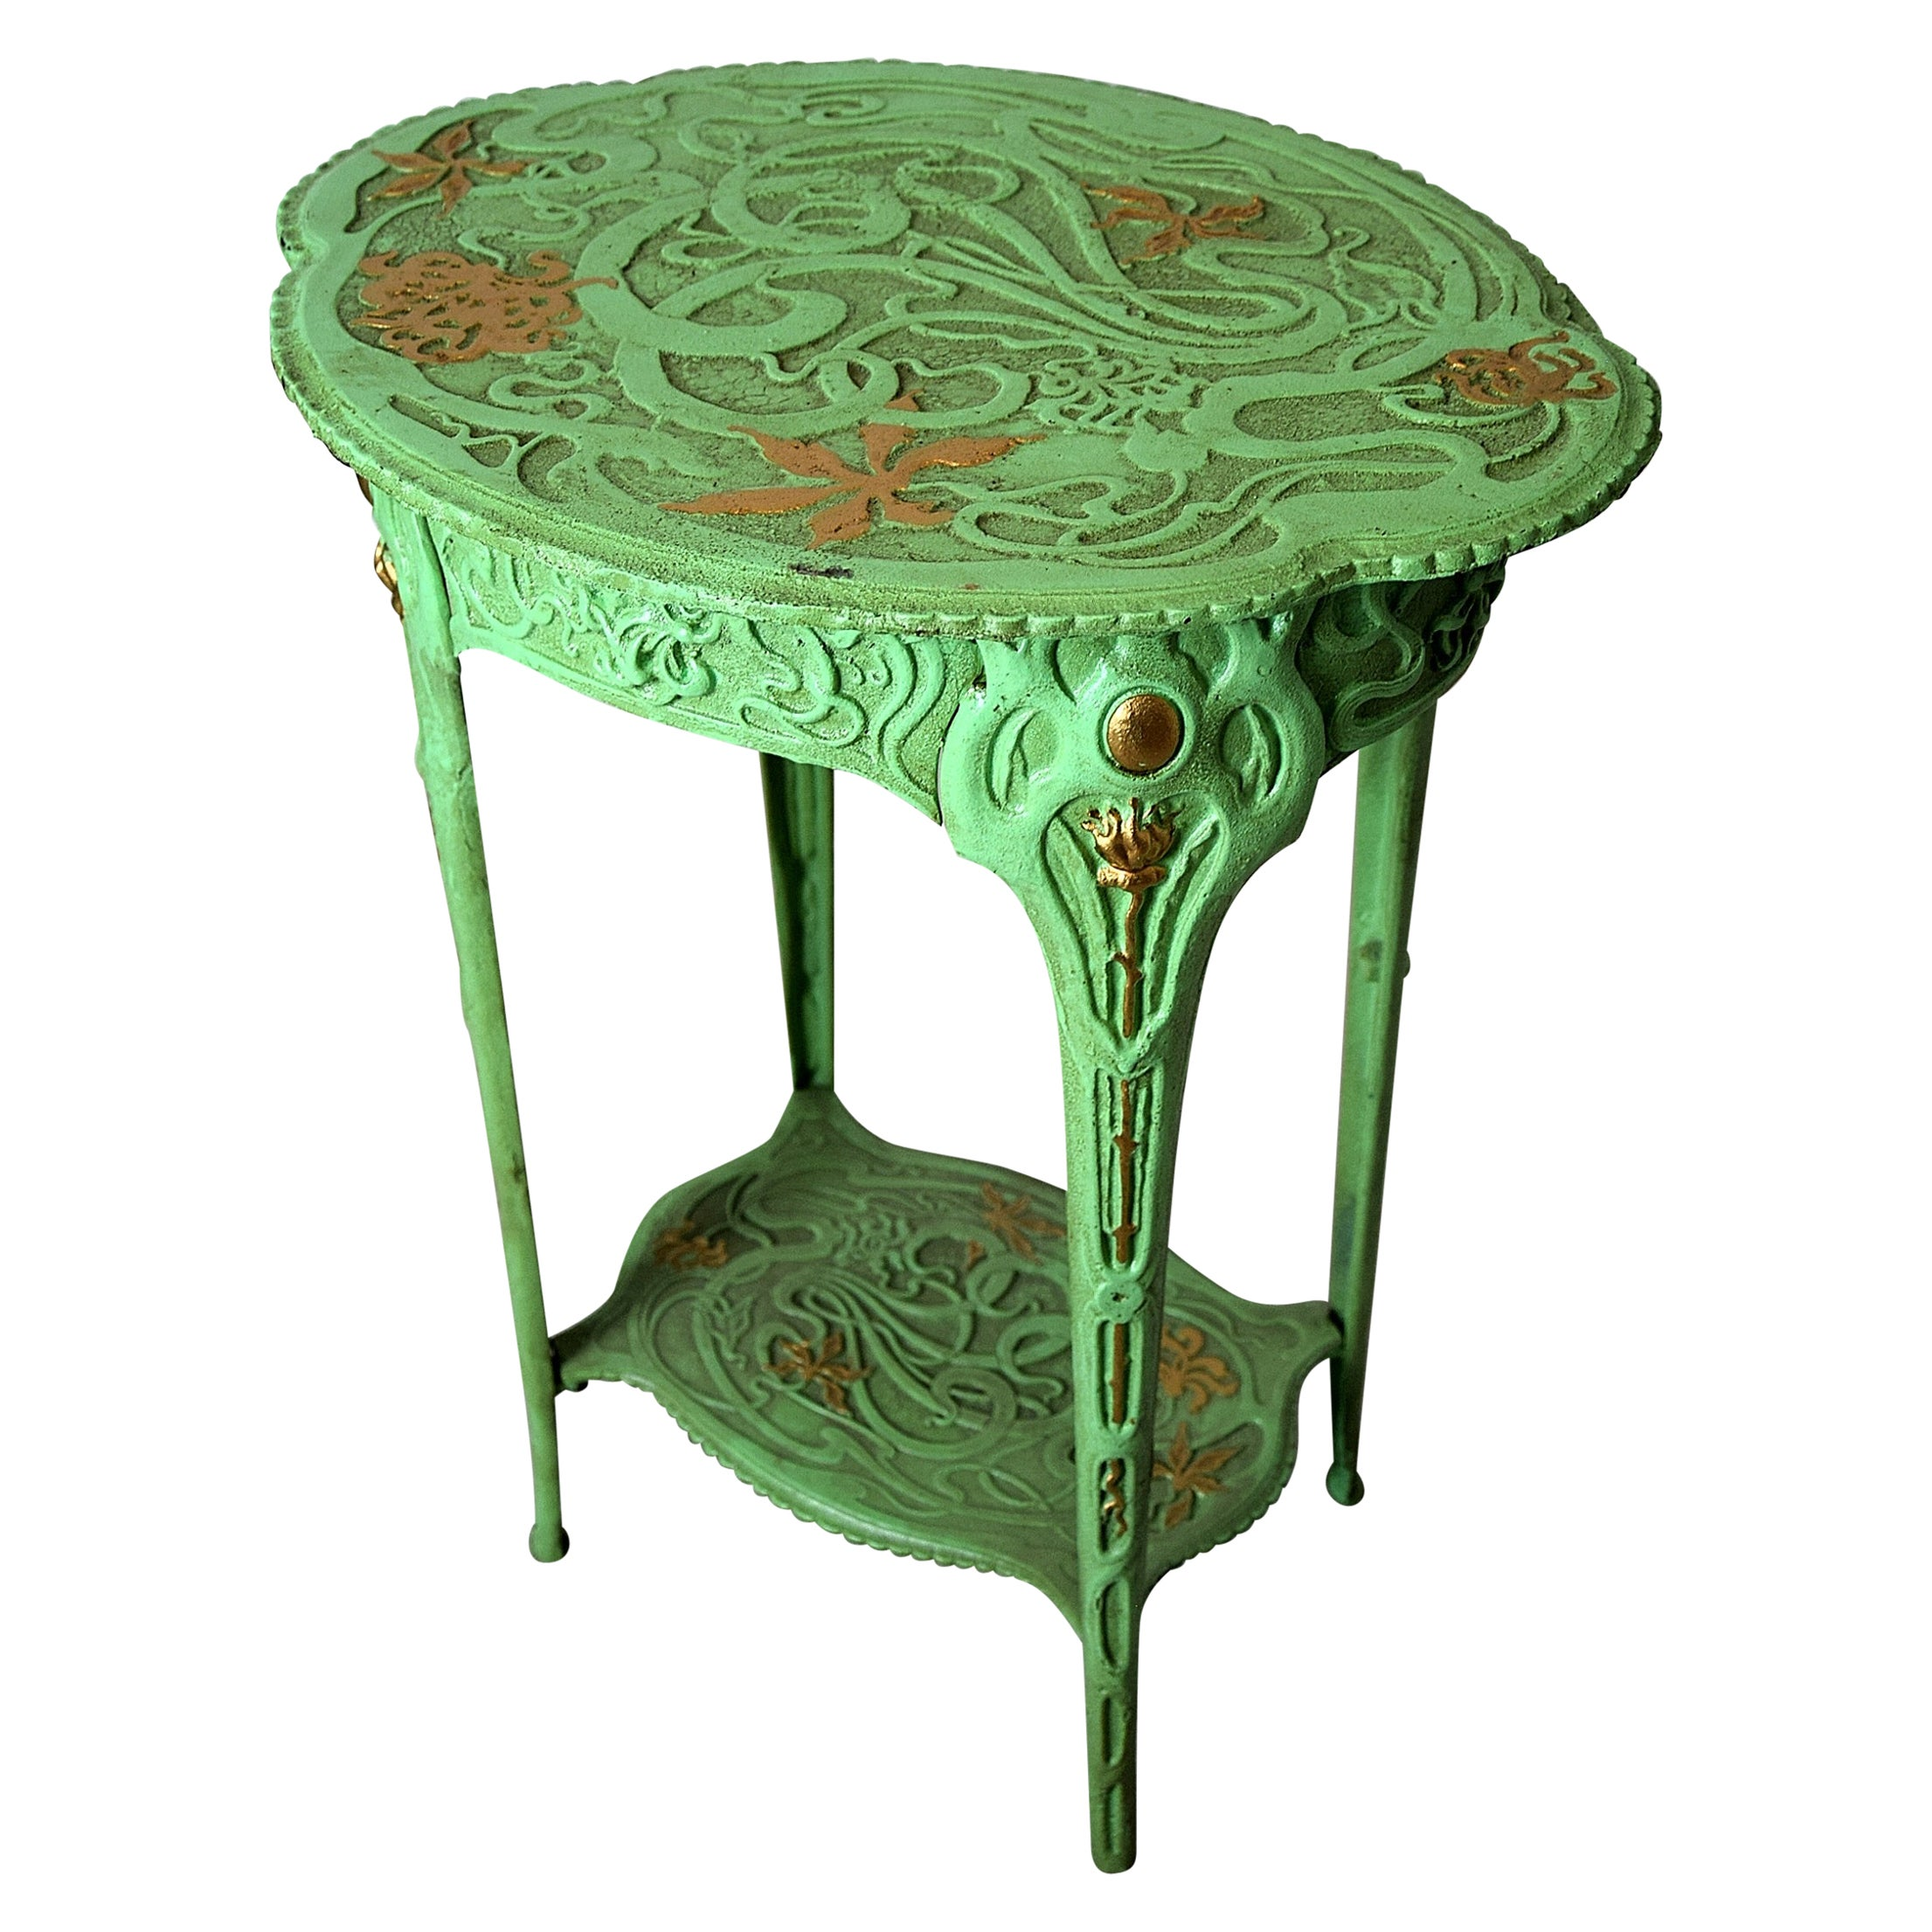 Green and Gold Art Nouveau Cast Iron Side Table